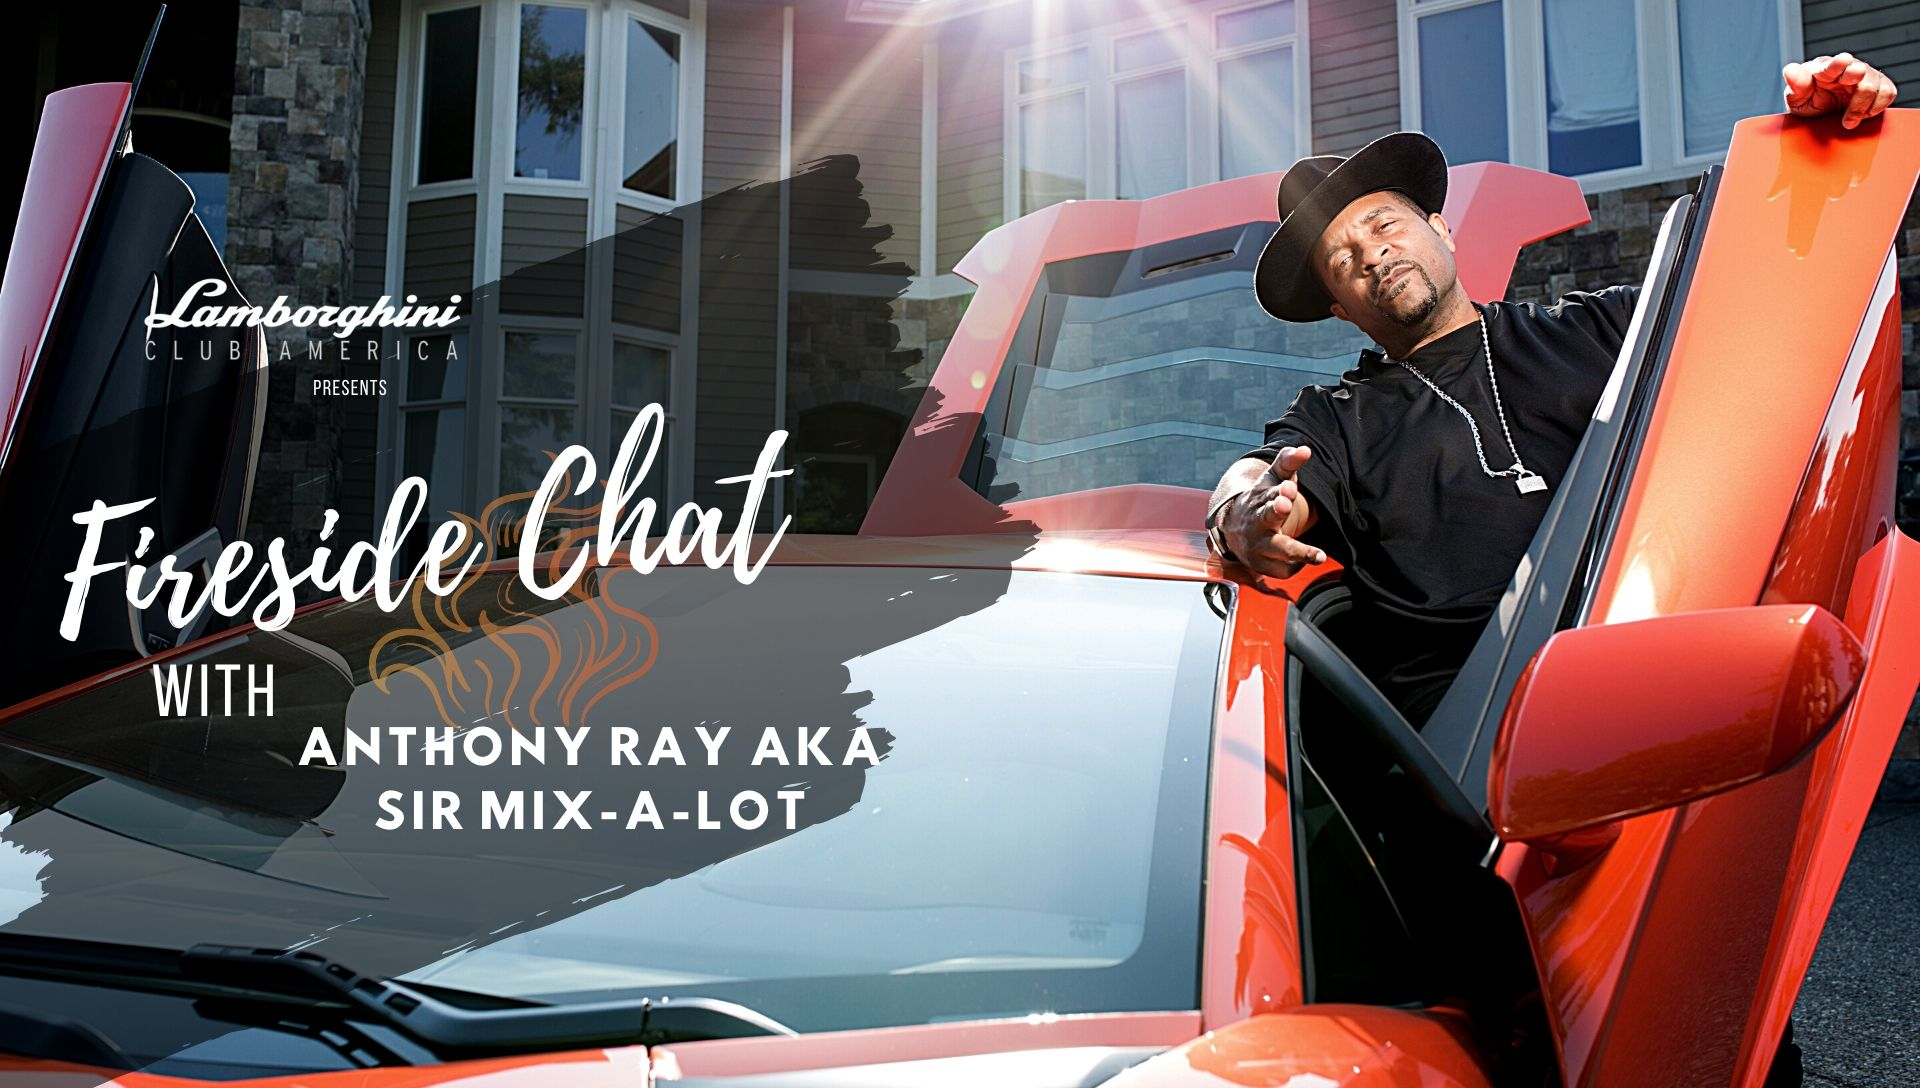 LAMBORGHINI CLUB AMERICA FIRESIDE CHAT WITH Sir Mix-A-Lot, Episode 4